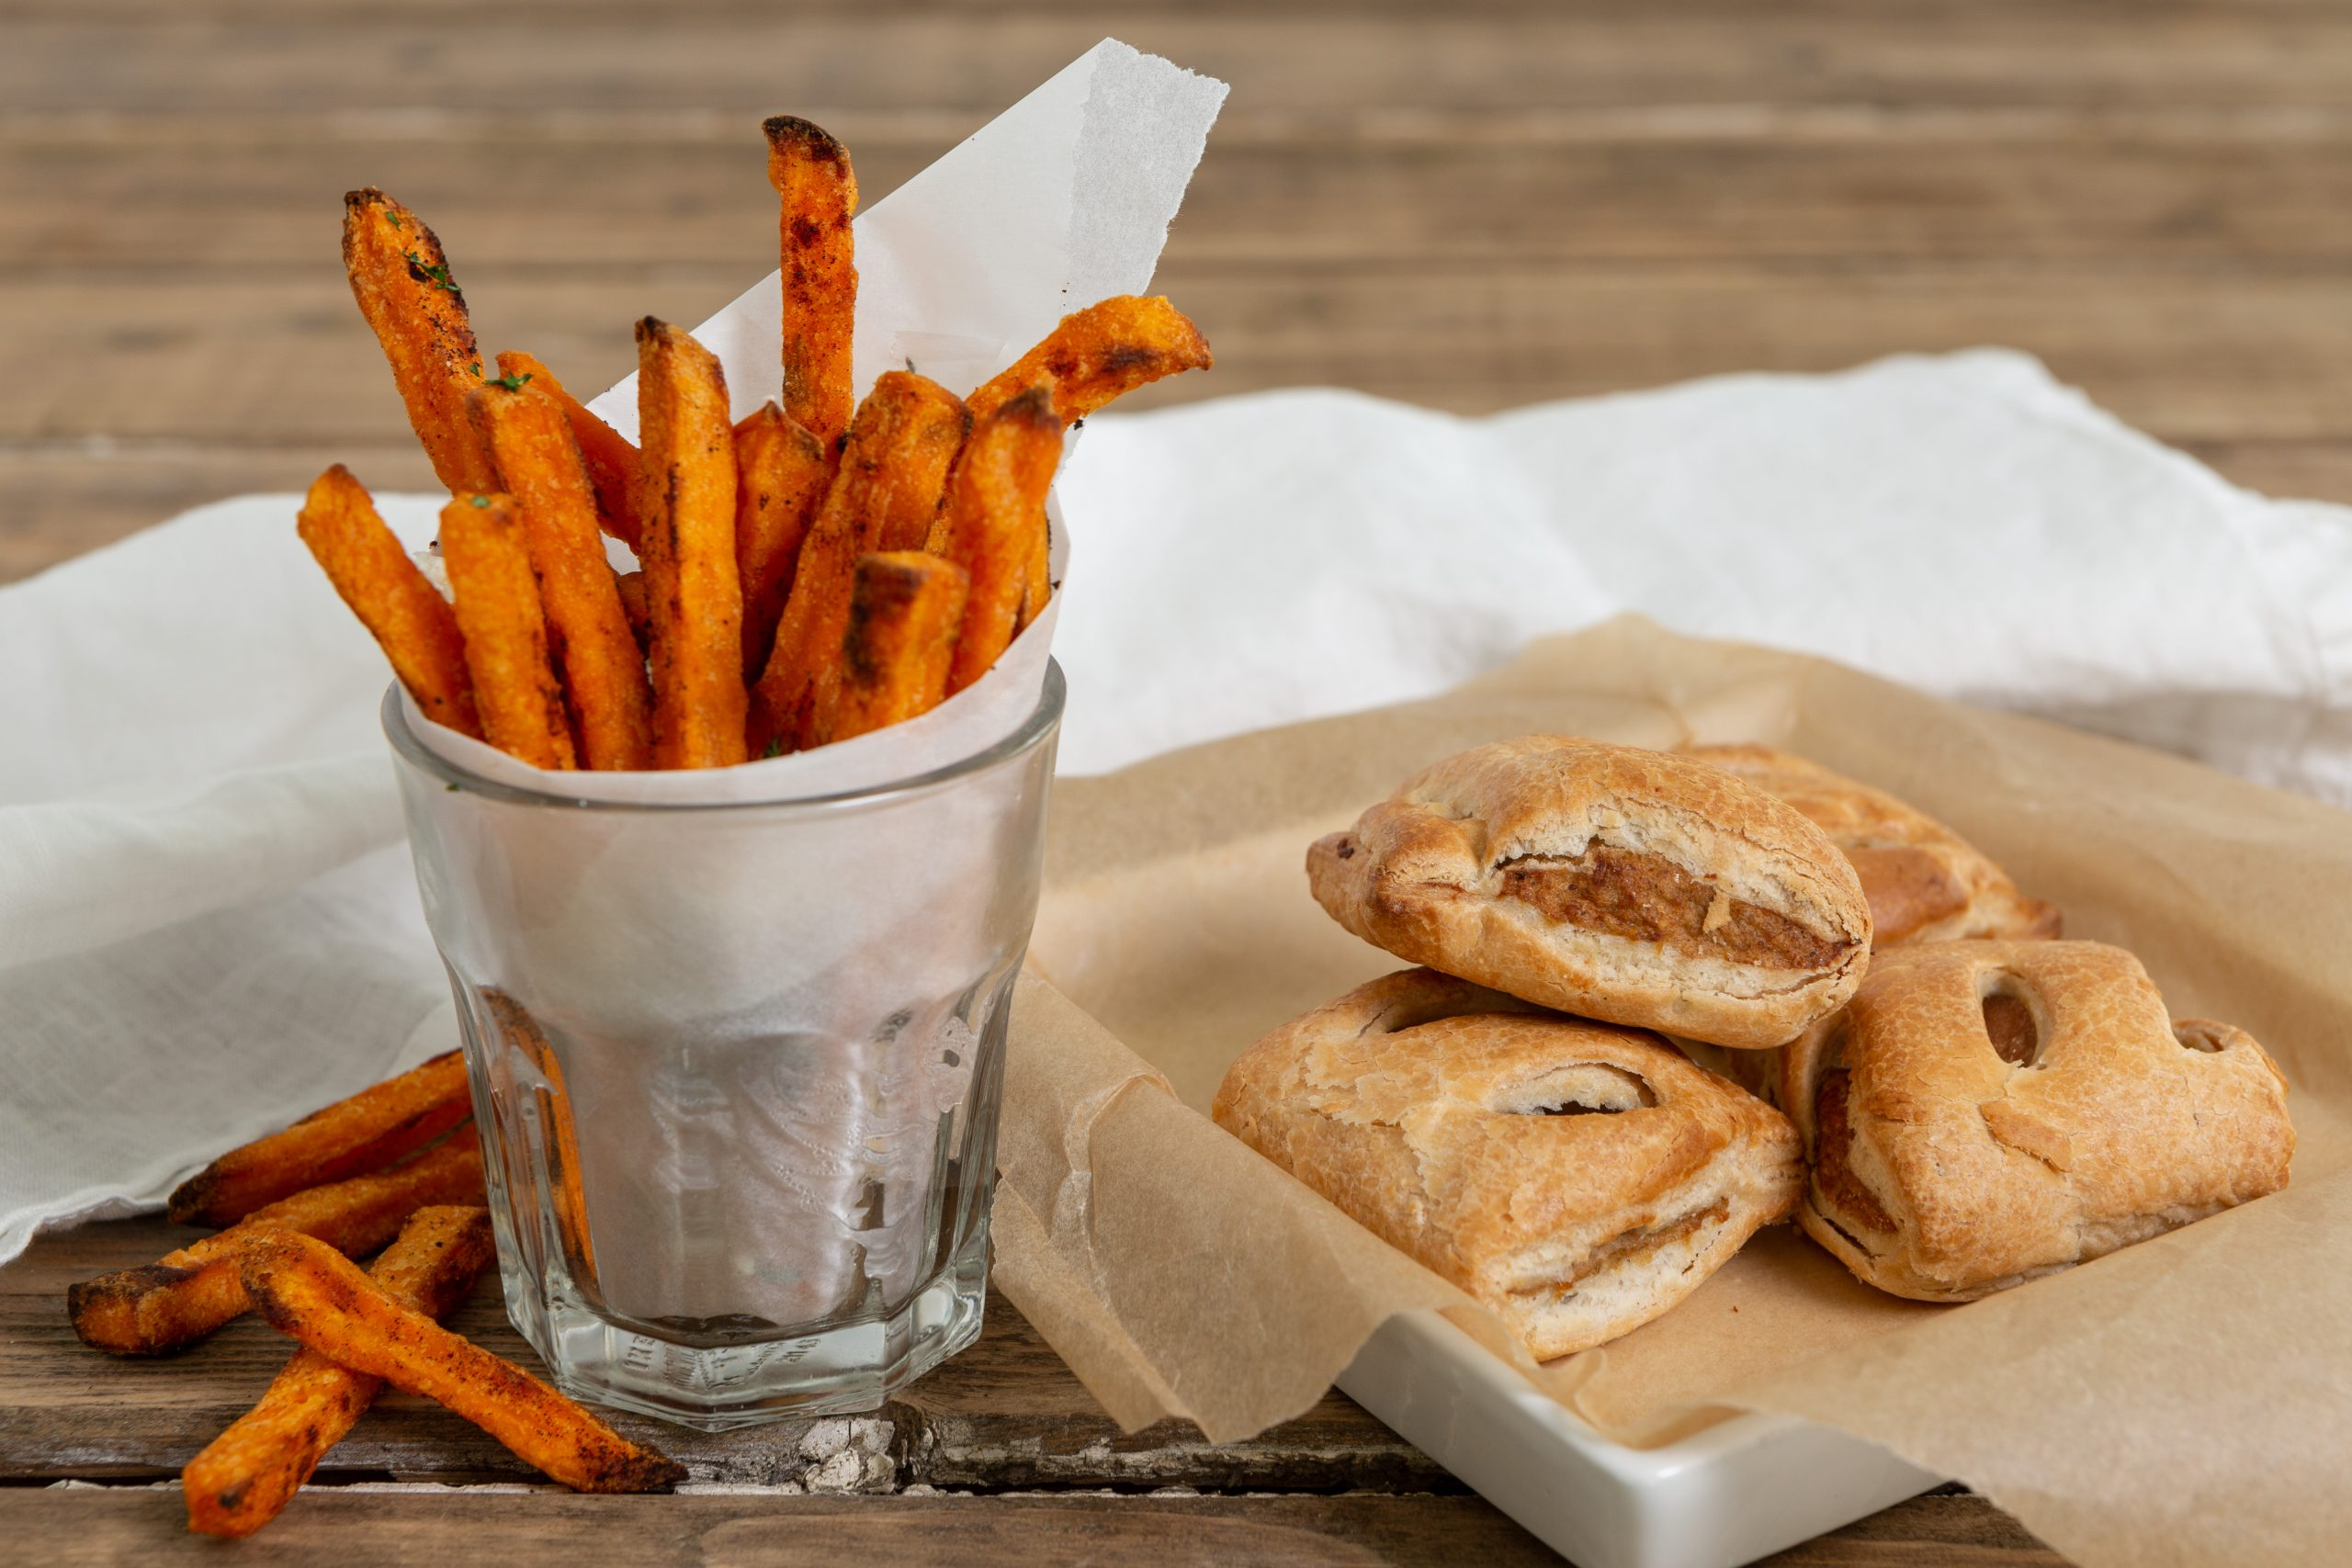 Wall's Pastry_Sweet potato fries with vegan sausage rolls